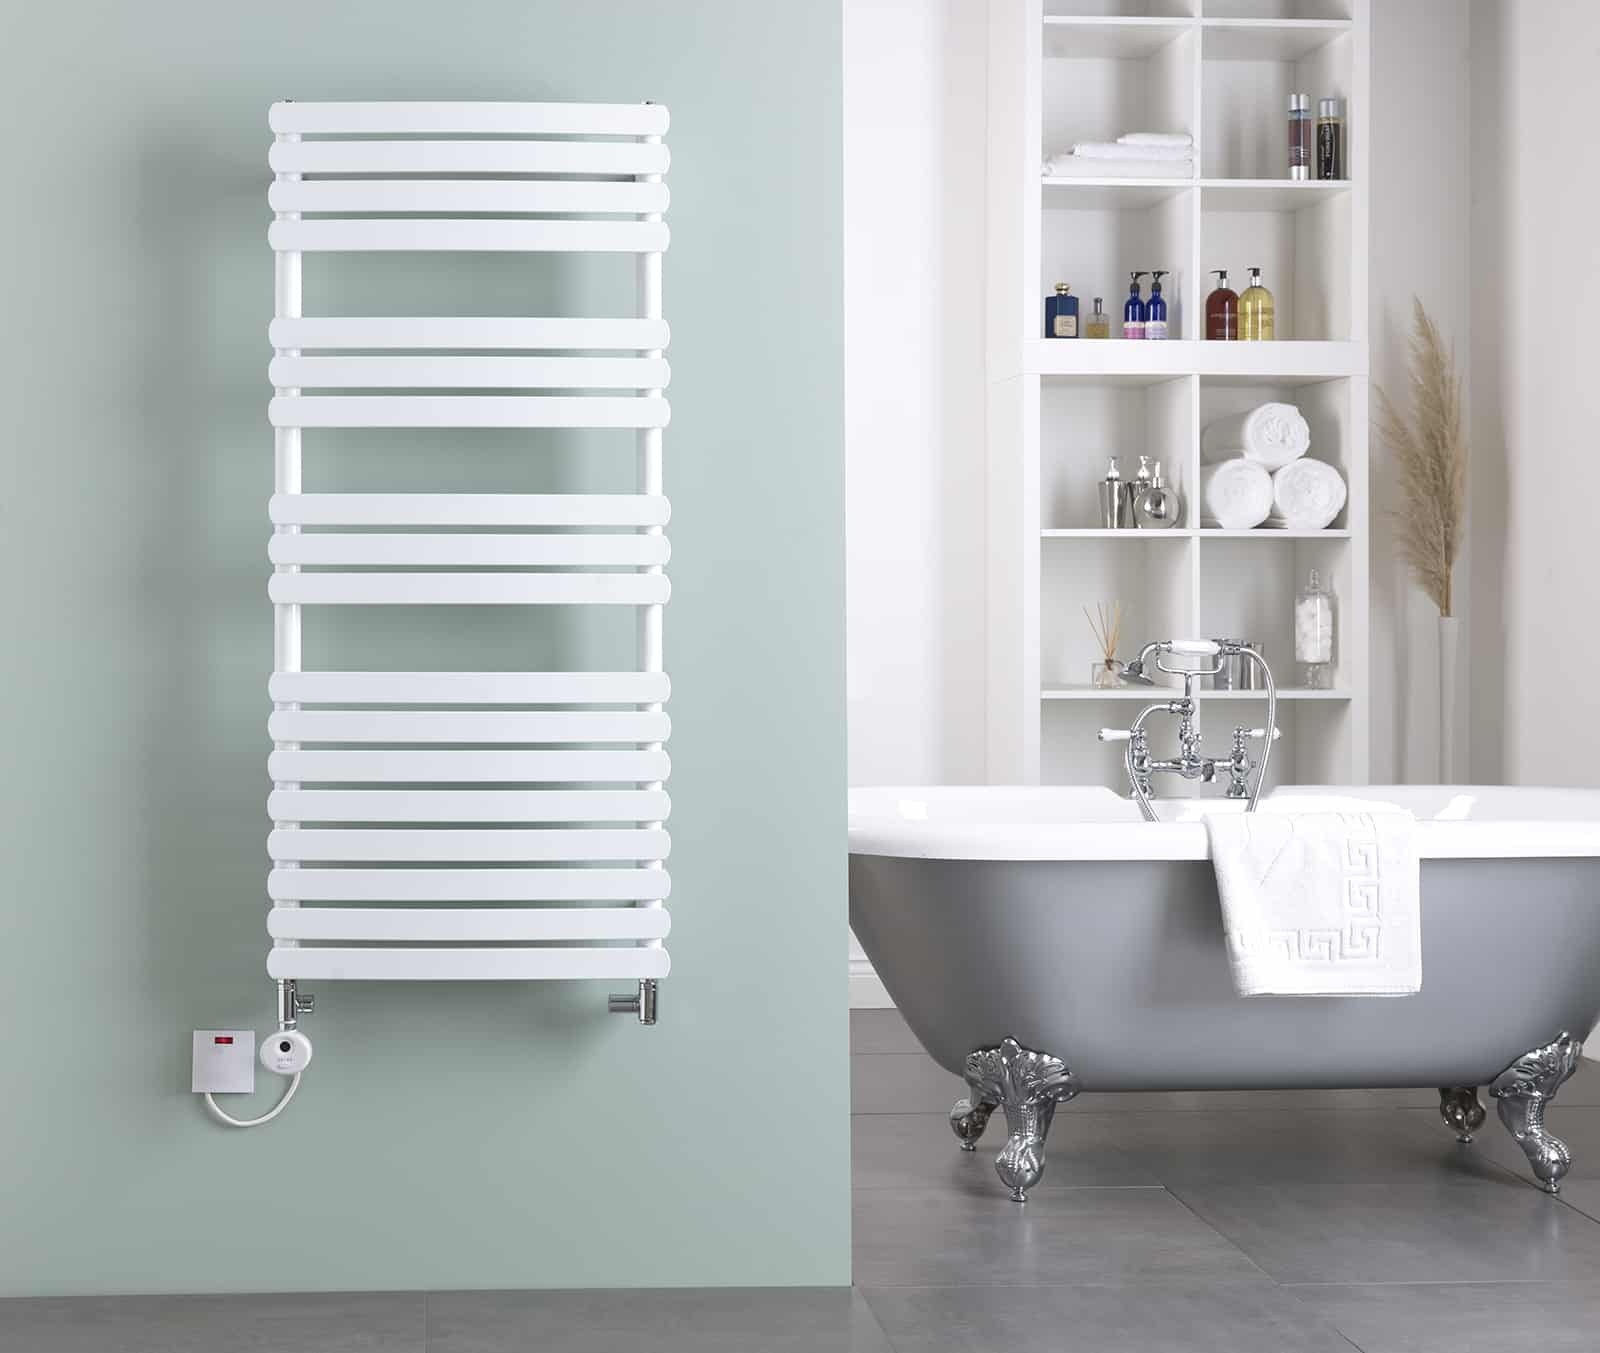 White GreebaR2DF - Adax by Solaire Heating Products